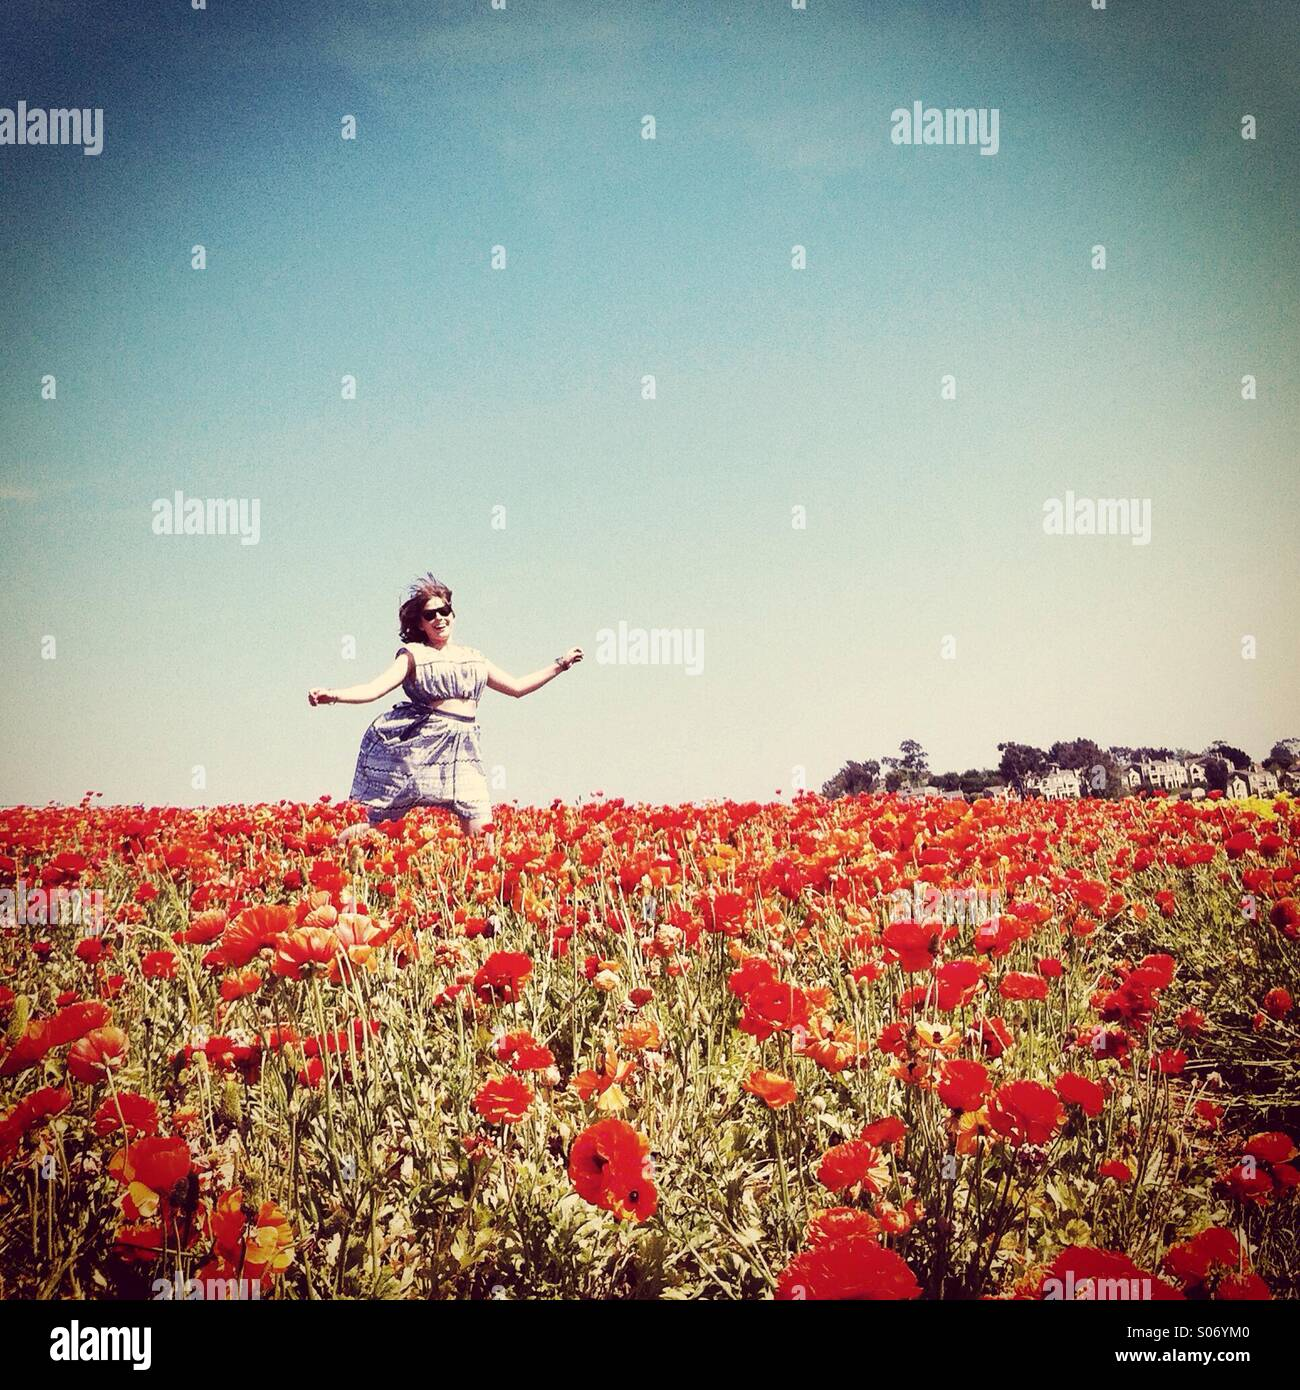 Girl dancing in field of poppies - Stock Image